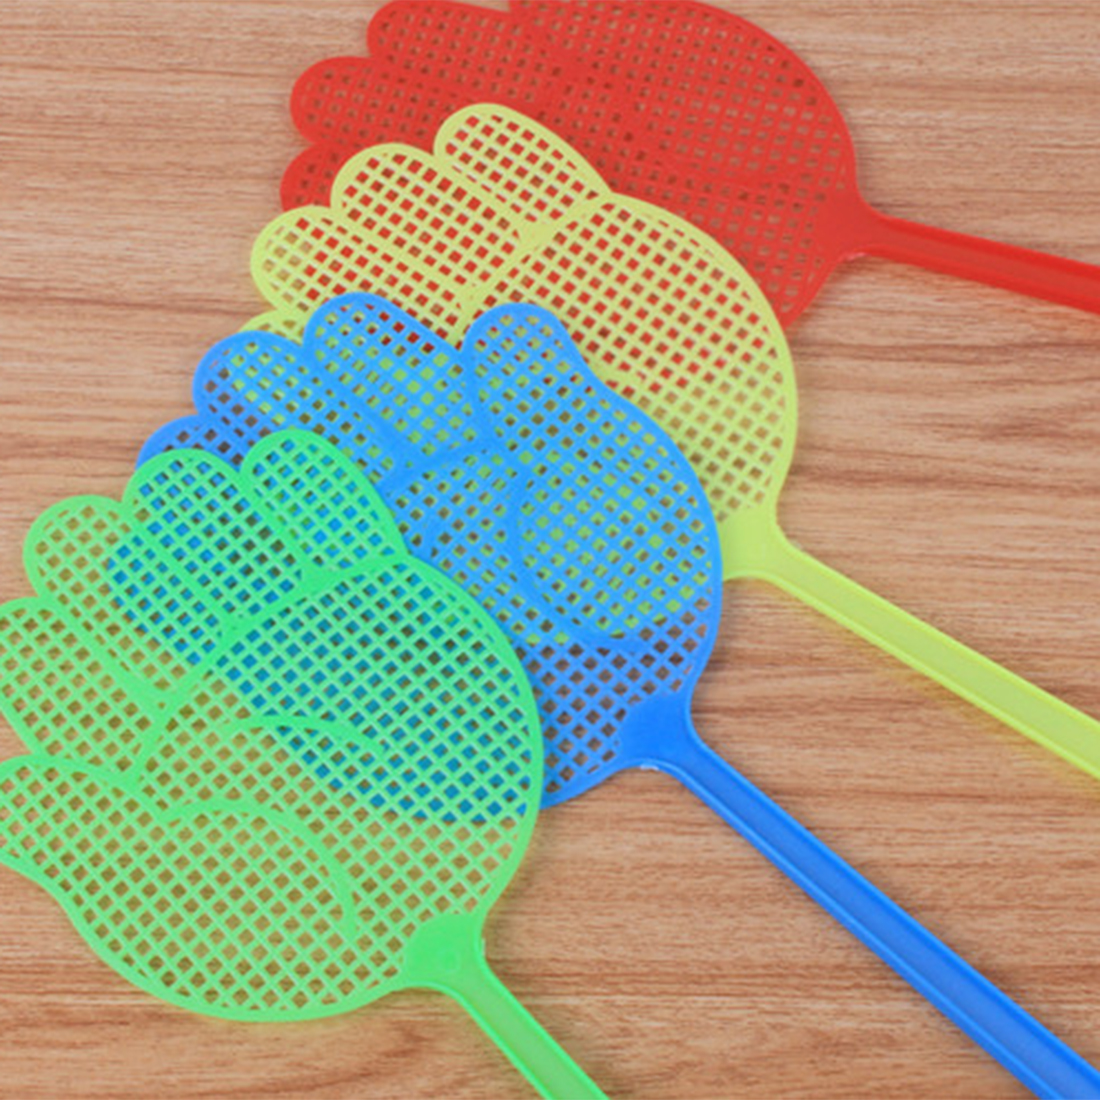 Hot 10Pcs Cute Palm Pattern Plastic Fly Swatter Lightweight Household Flapper Mosquito Bug Zapper Pest Control Color Random Hot 10Pcs Cute Palm Pattern Plastic Fly Swatter Lightweight Household Flapper Mosquito Bug Zapper Pest Control Color Random